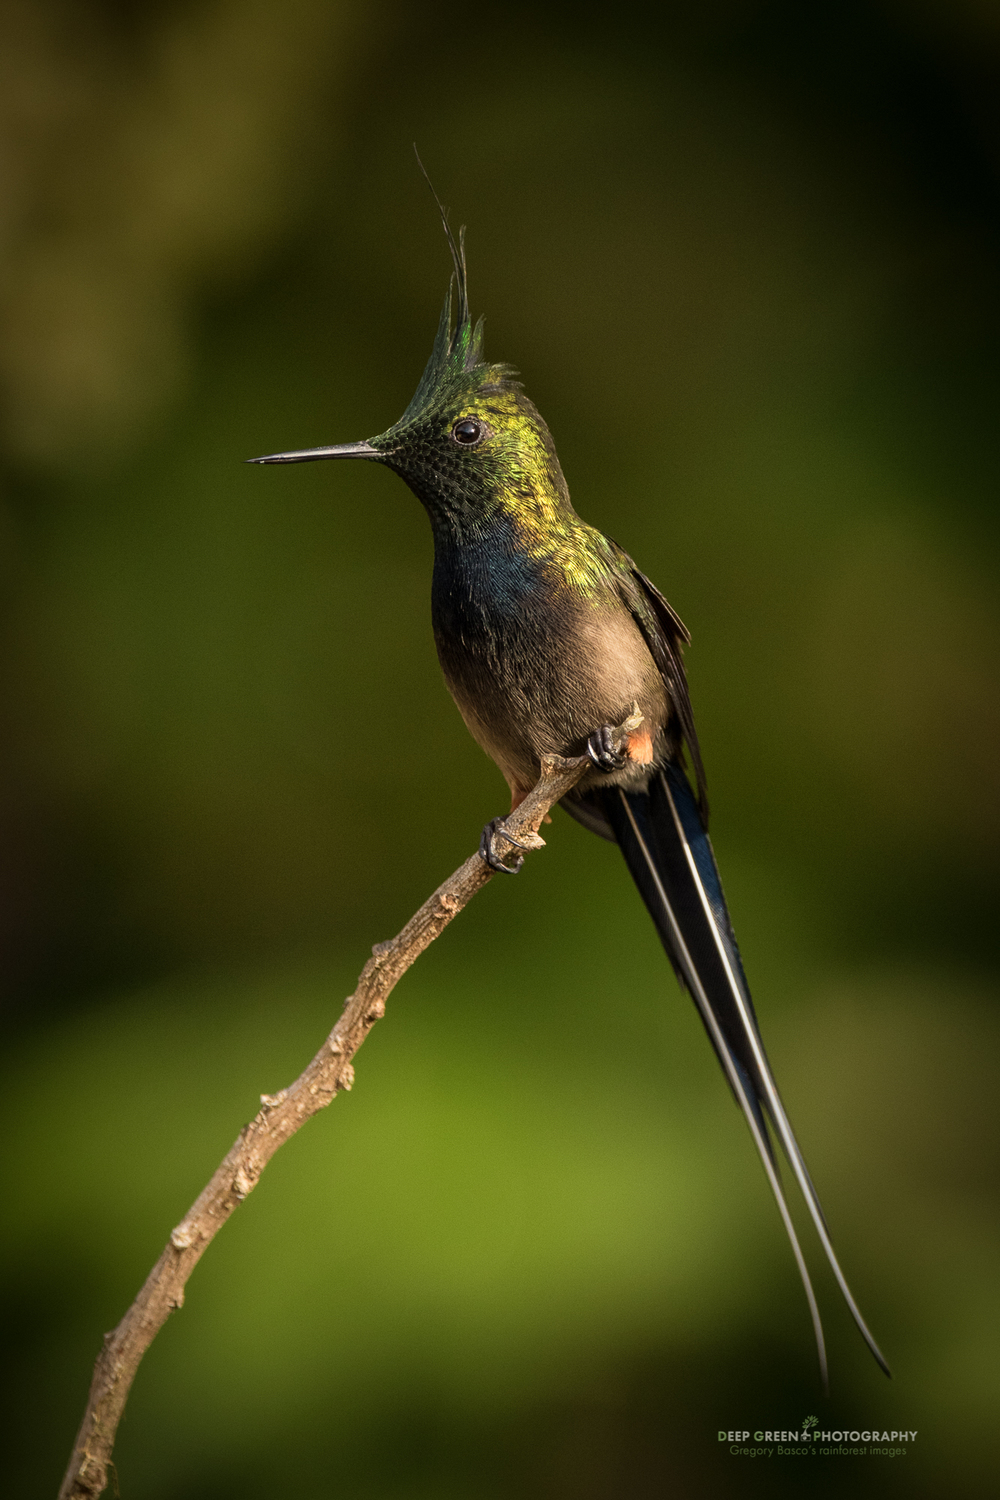 A wire-crested thorntail hummingbird in the rainforest in Ecuador